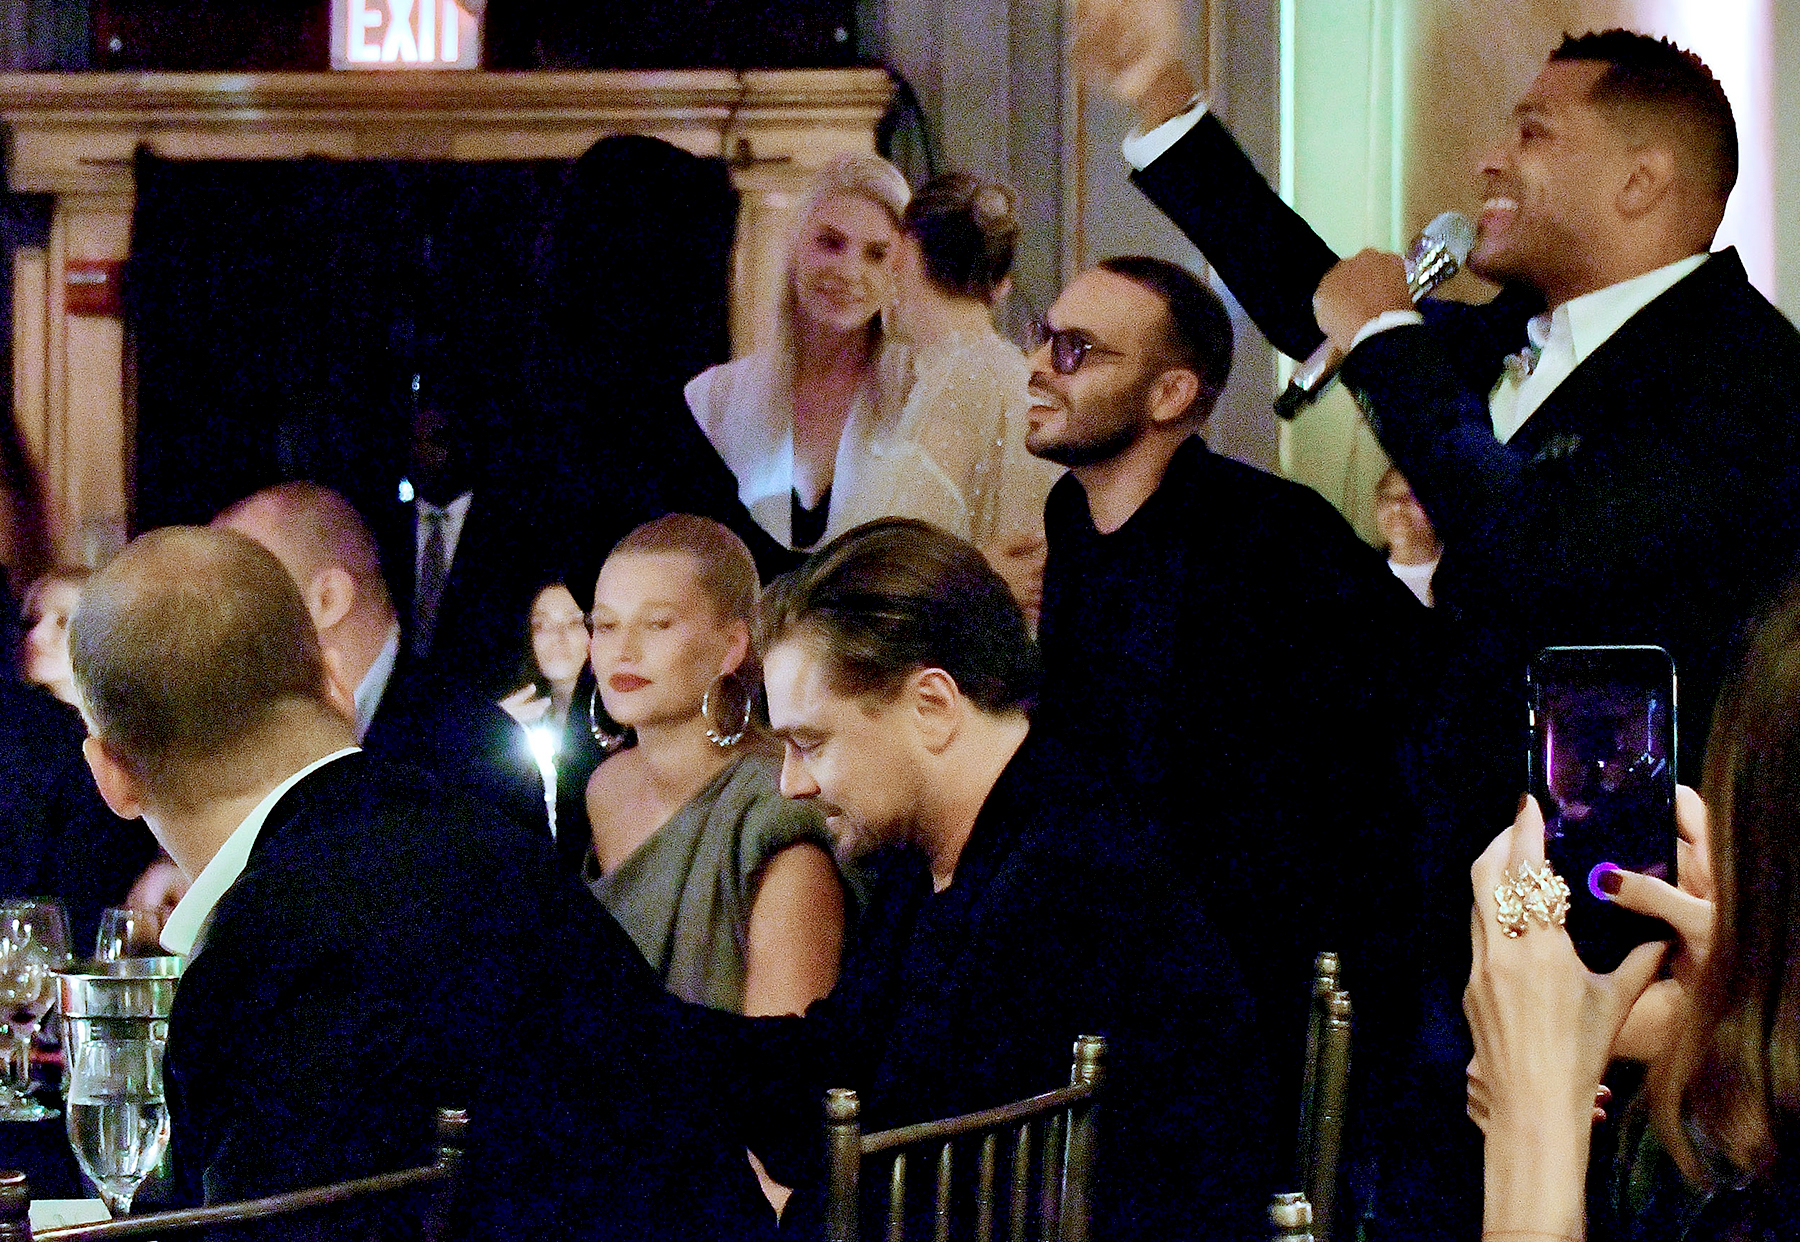 Maxwell (R) performs in front of Leonardo DiCaprio and Toni Garnn at the Unitas Third Annual Gala Against Human Trafficking at Capitale in New York City on September 12, 2017.